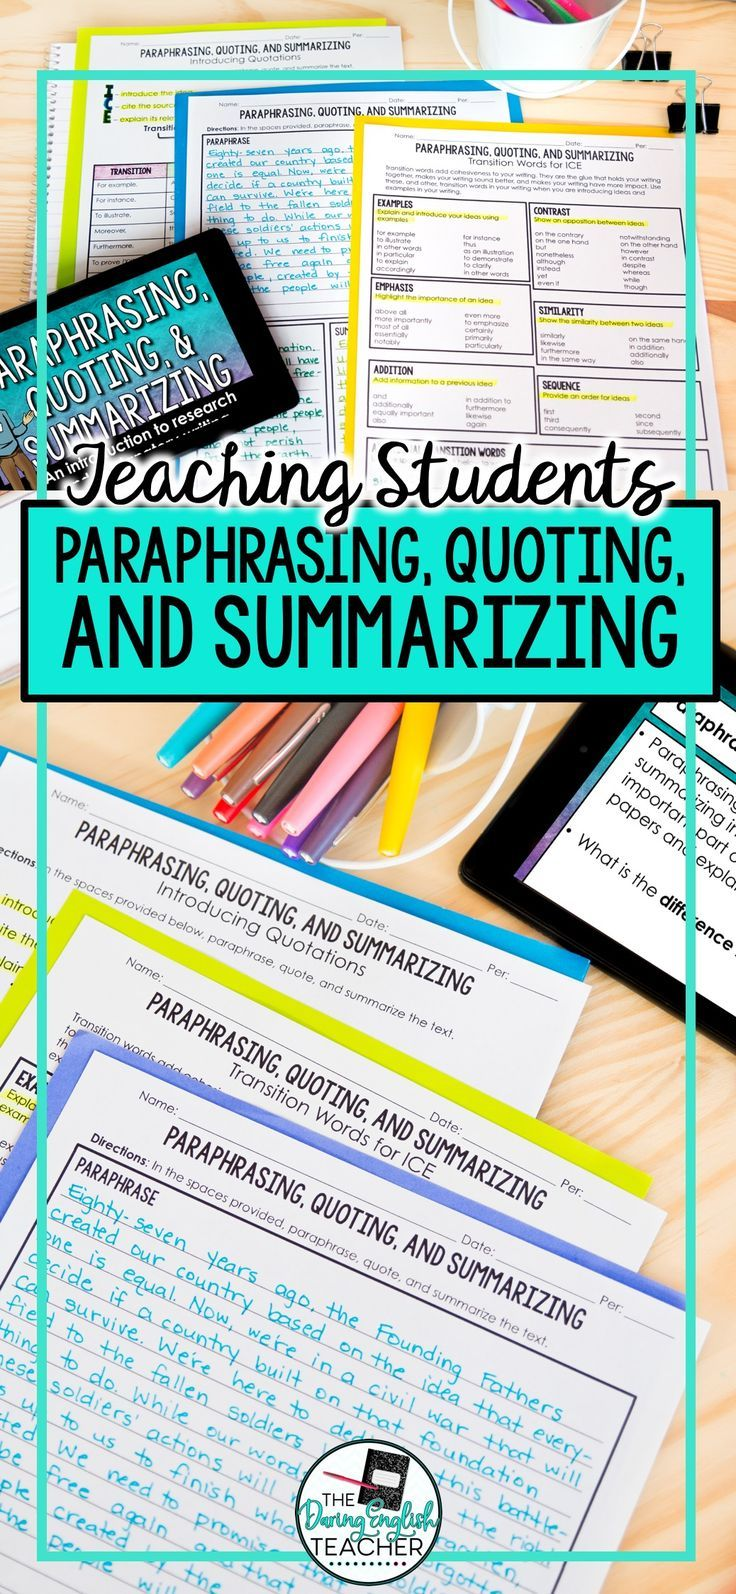 Paraphrase Quote Summarize Teach Your Student How To And S Teaching High School English Summarizing Lessons Motivational Activity For Paraphrasing